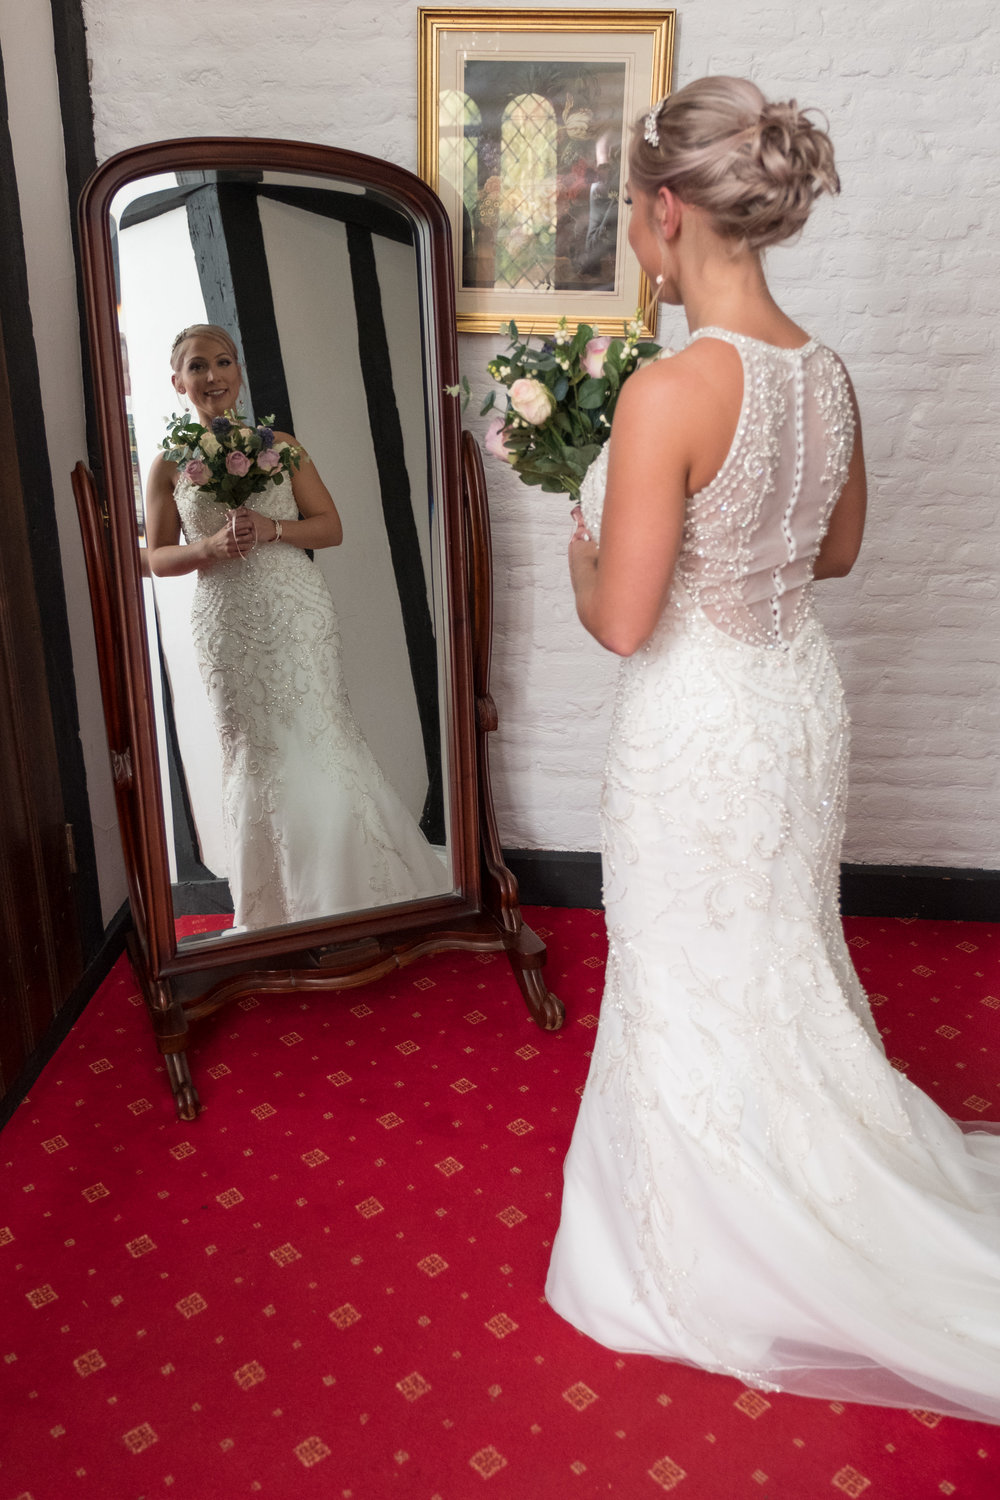 Wedding photographer at Leez Priory, Essex